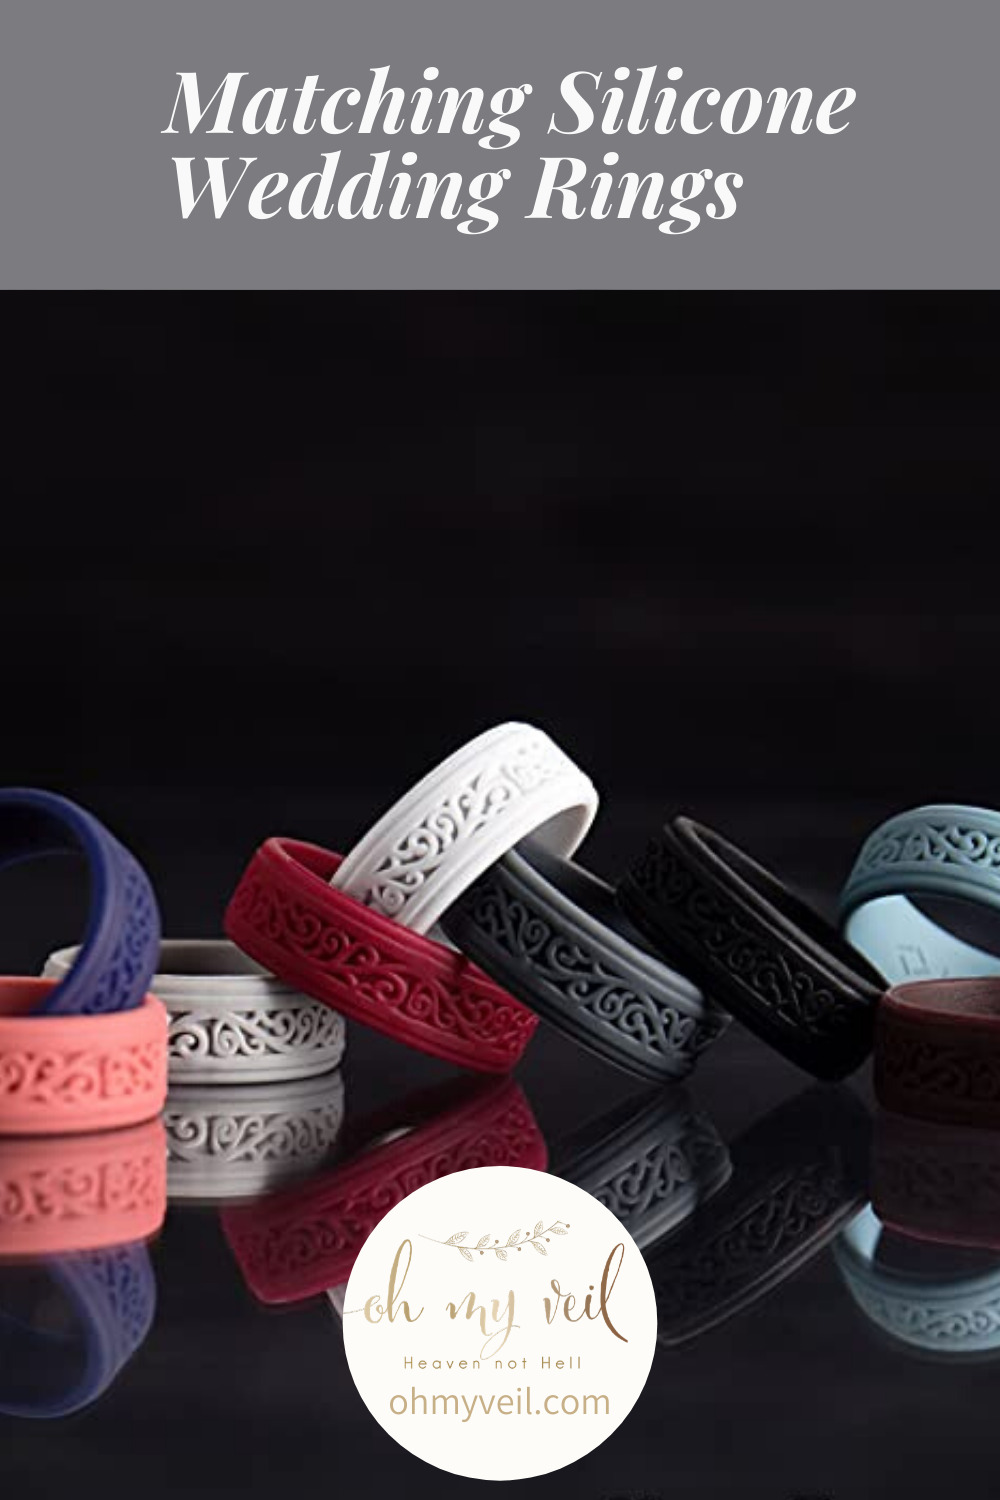 Silicone wedding rings are a growing trend in the NFL. They allow players to keep the symbol of marriage while playing a game that doesn't allow wearing traditional metal rings. Pro football players are not the only ones who can benefit from a silicone wedding ring. Find out if you can, too. (I'll bet you can!) #ohmyveilblog #alternativering #sportsweddingband